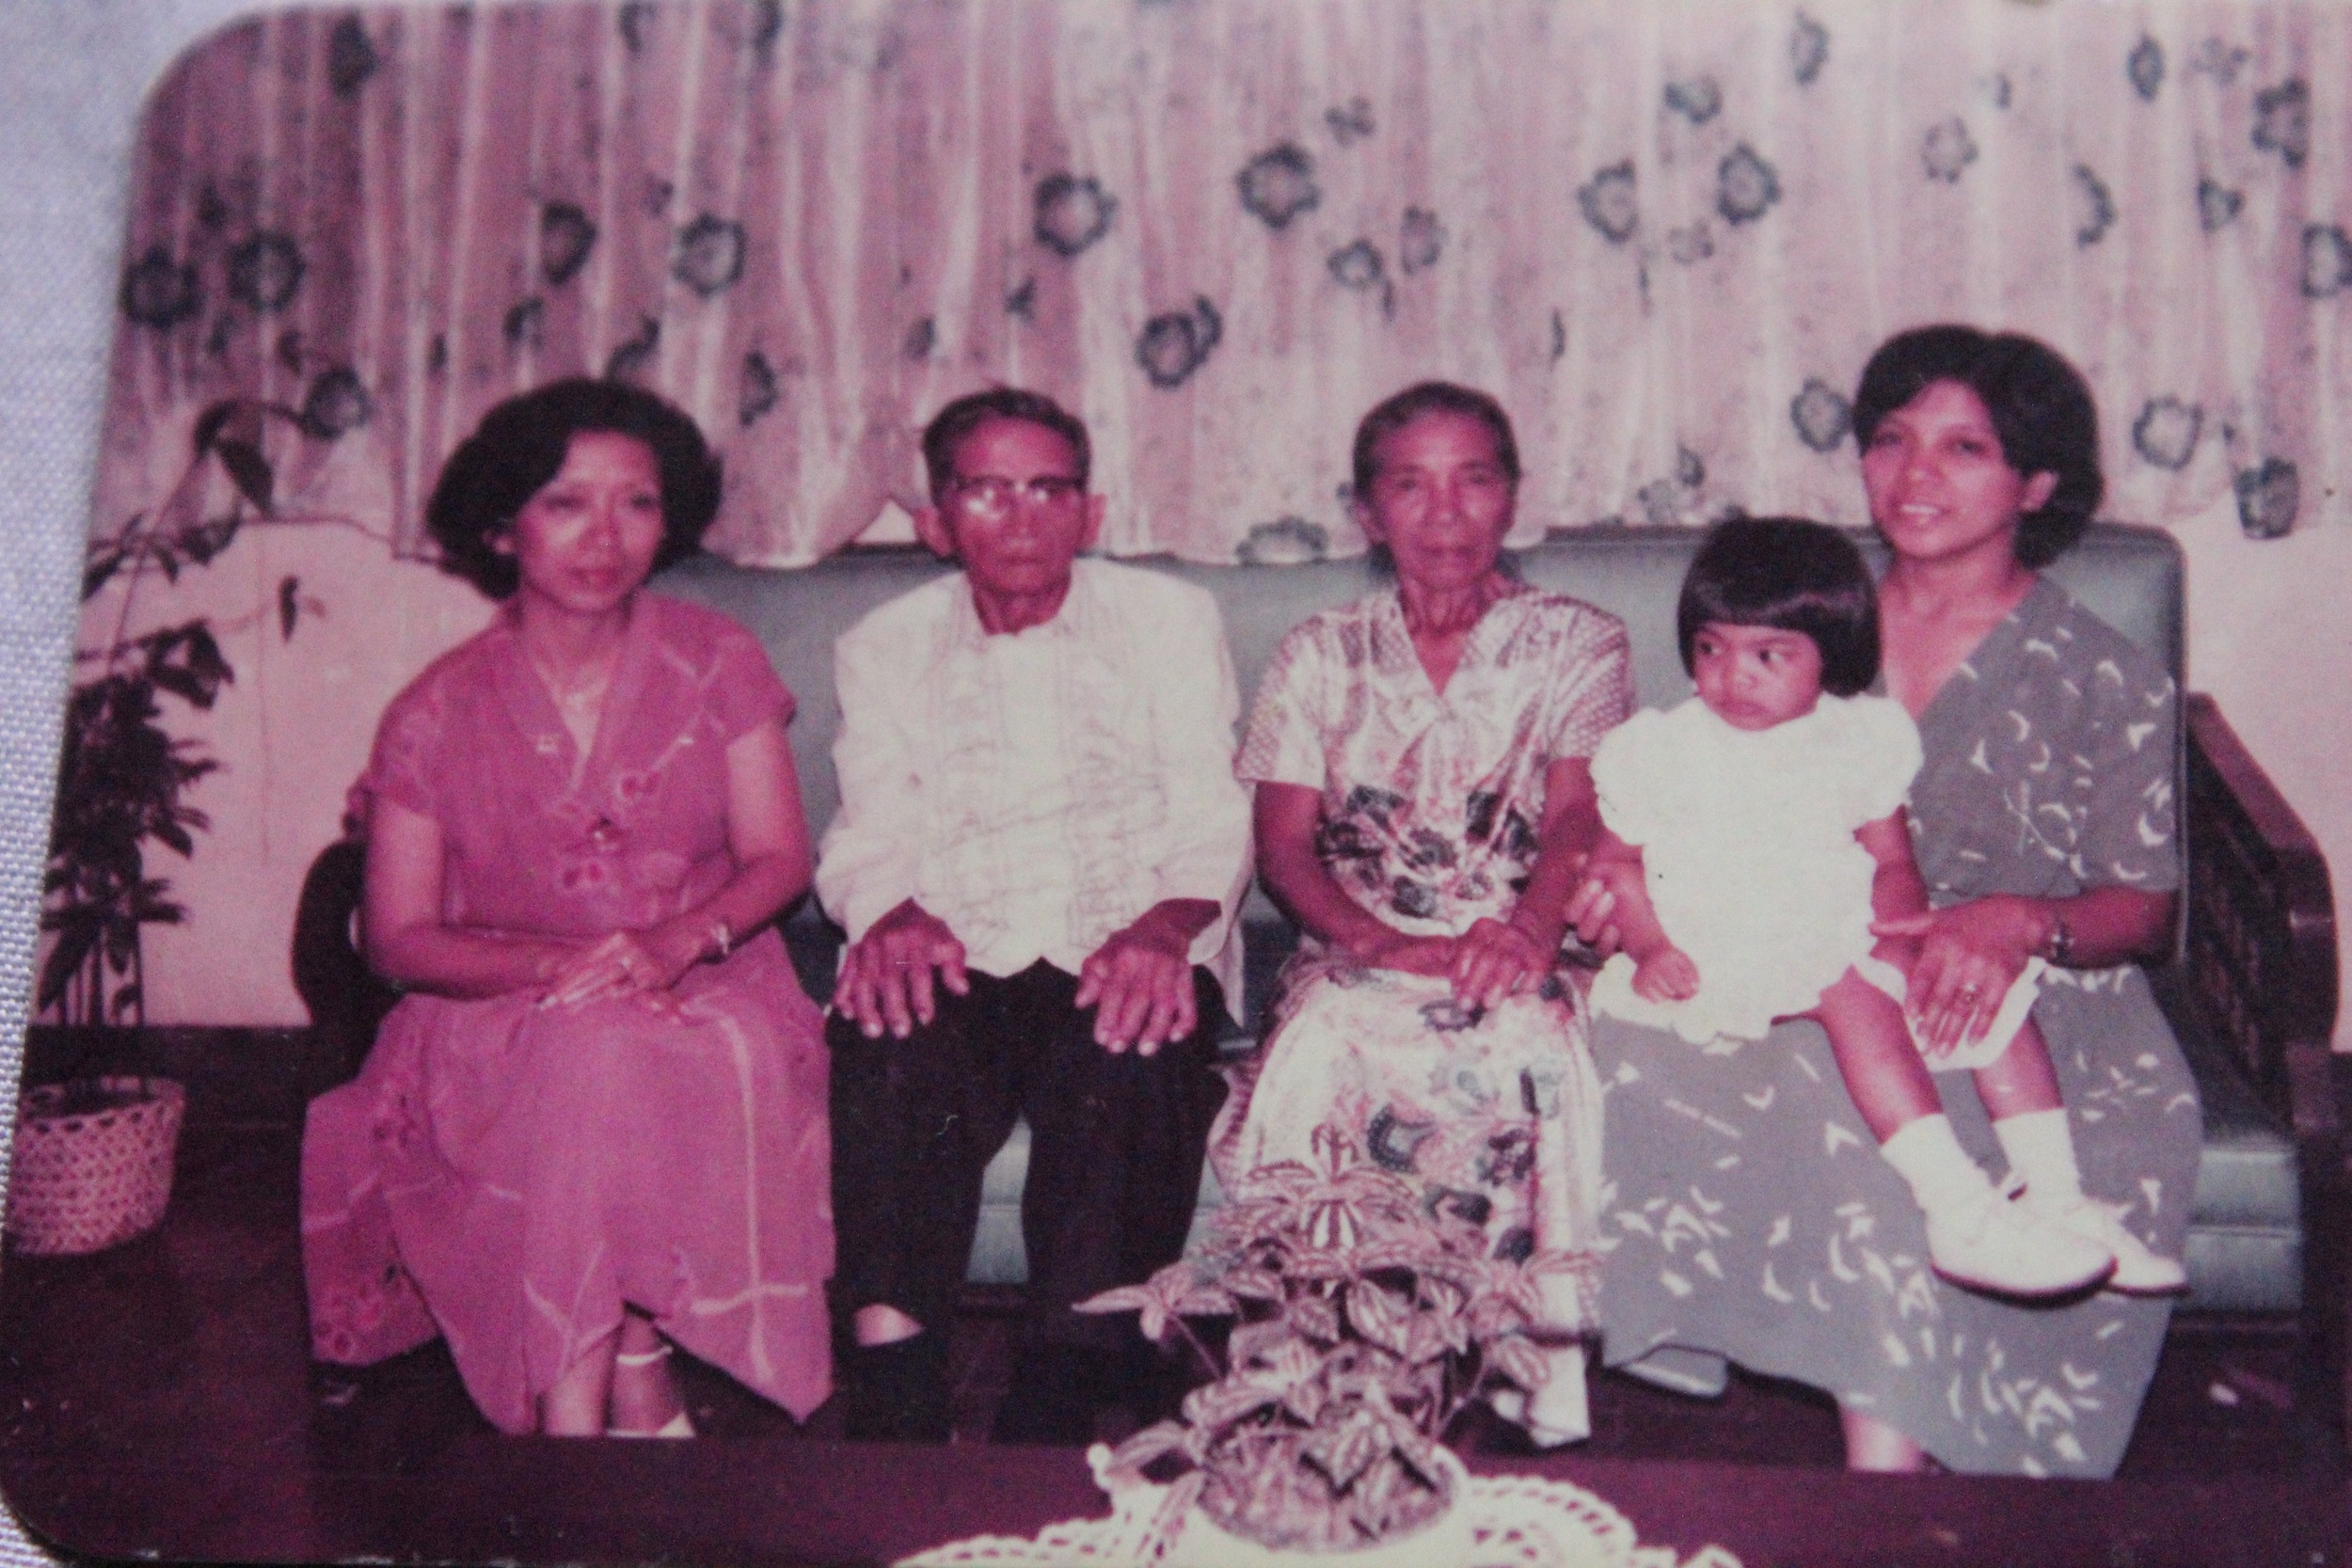 My family in the early 1980s (left to right): my aunt, Dr. Mendoza; my lolo Aniceto; my lola Maxima; my mom Corazon and me on her lap.